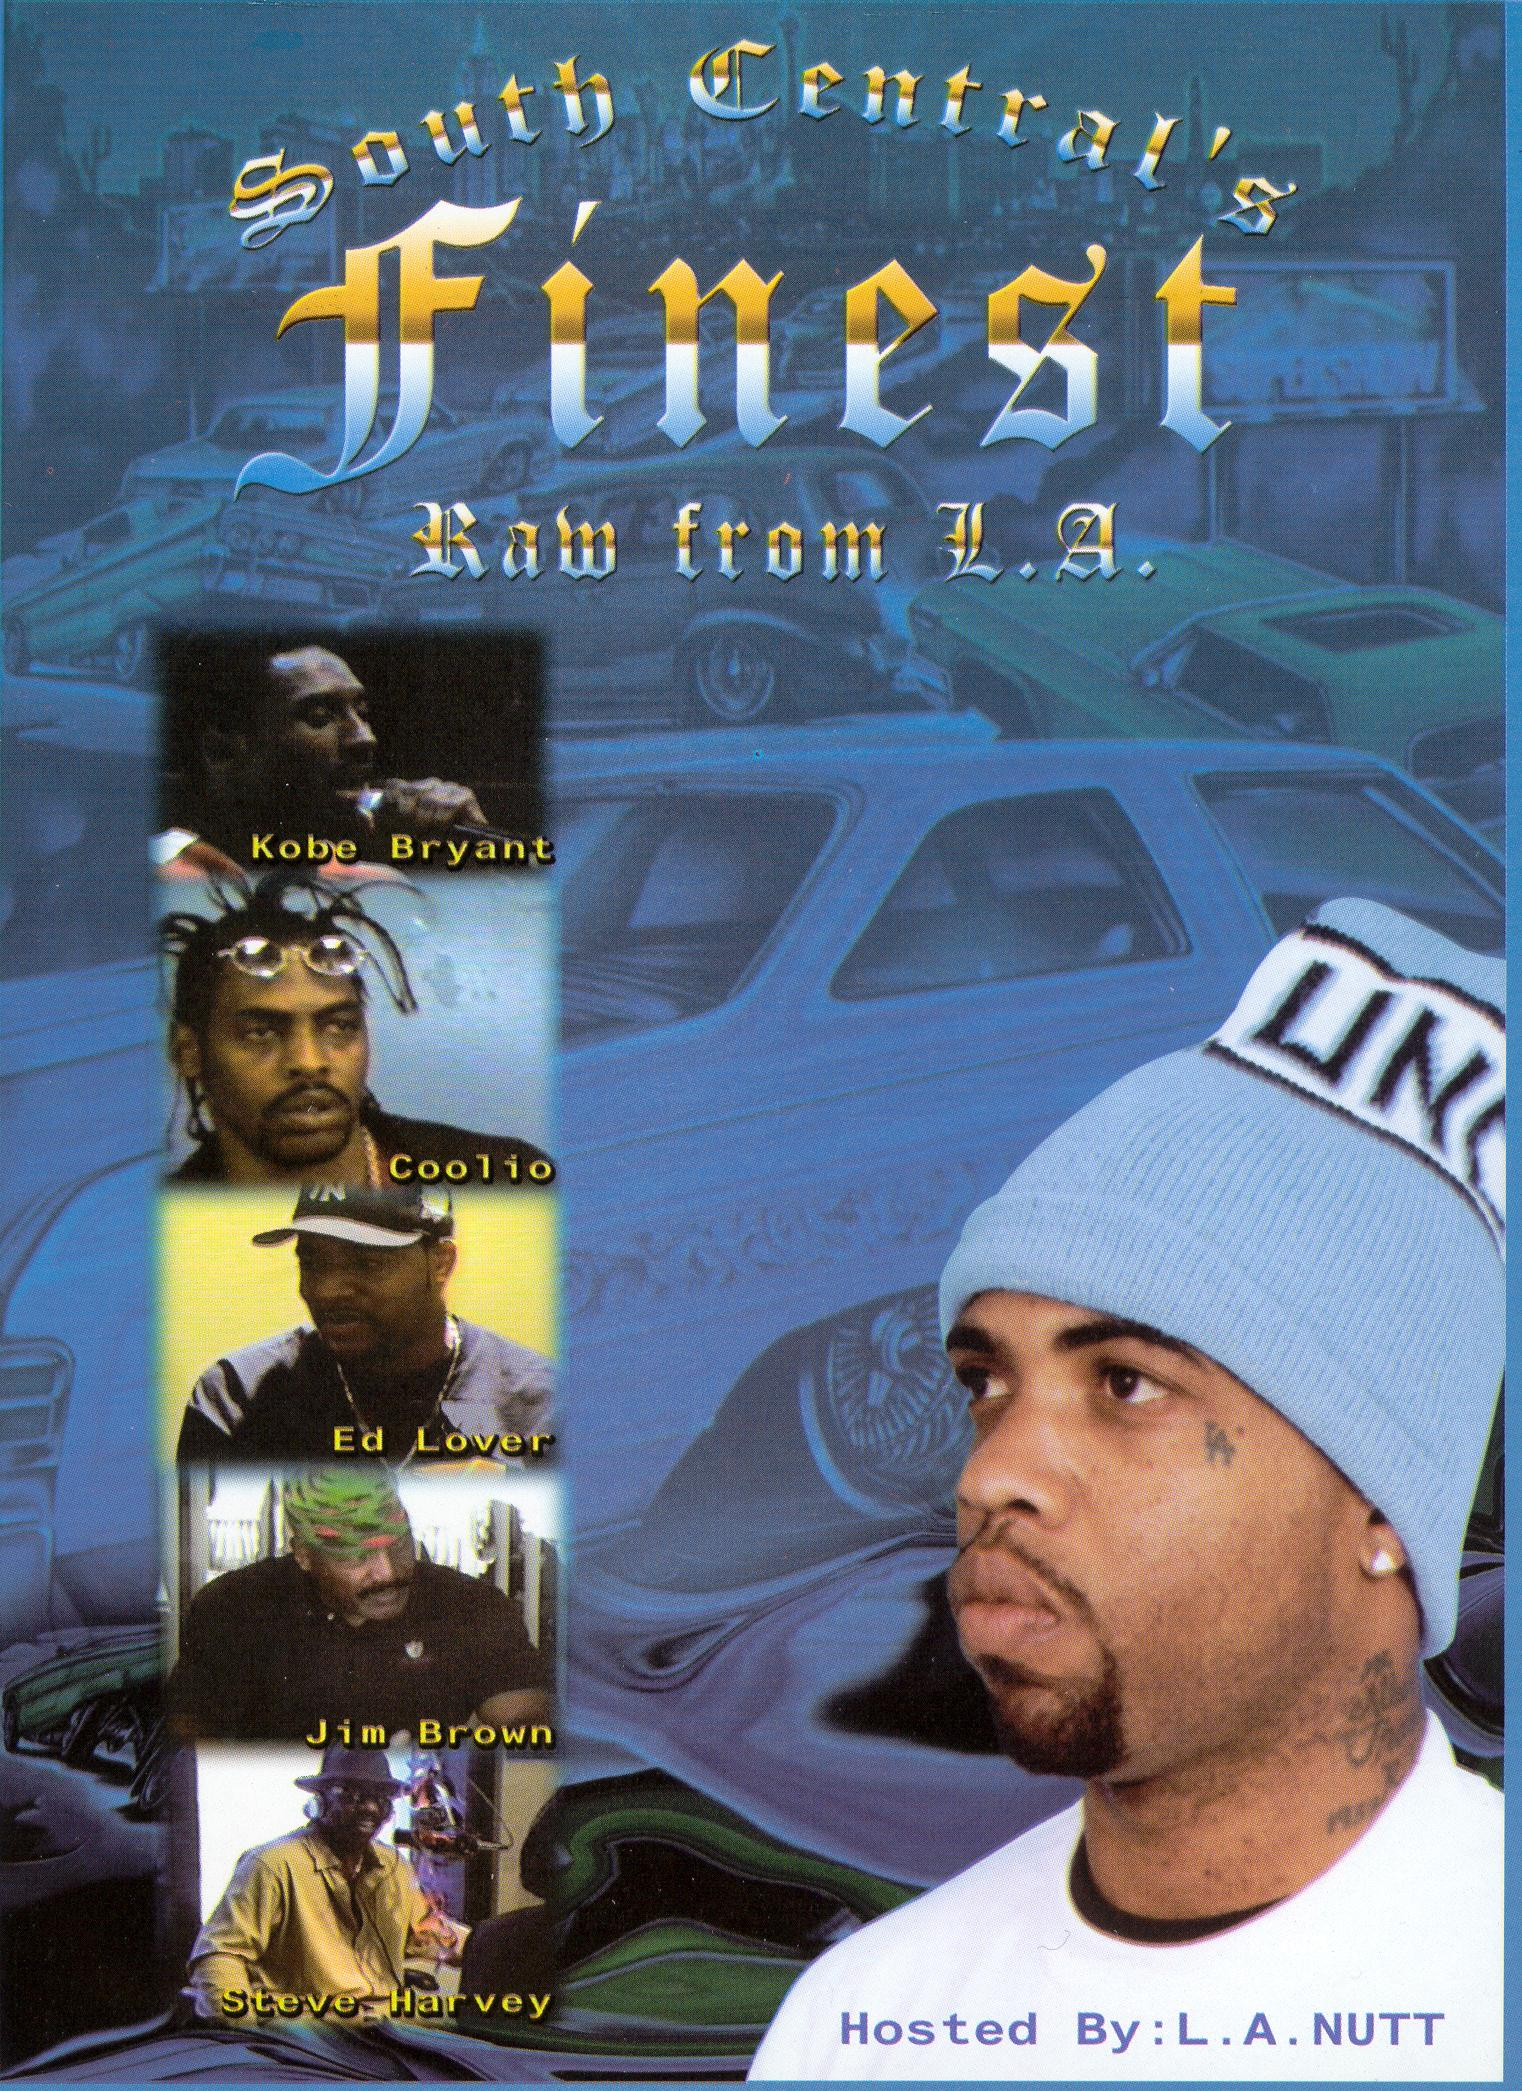 South Central's Finest Raw From L.A.